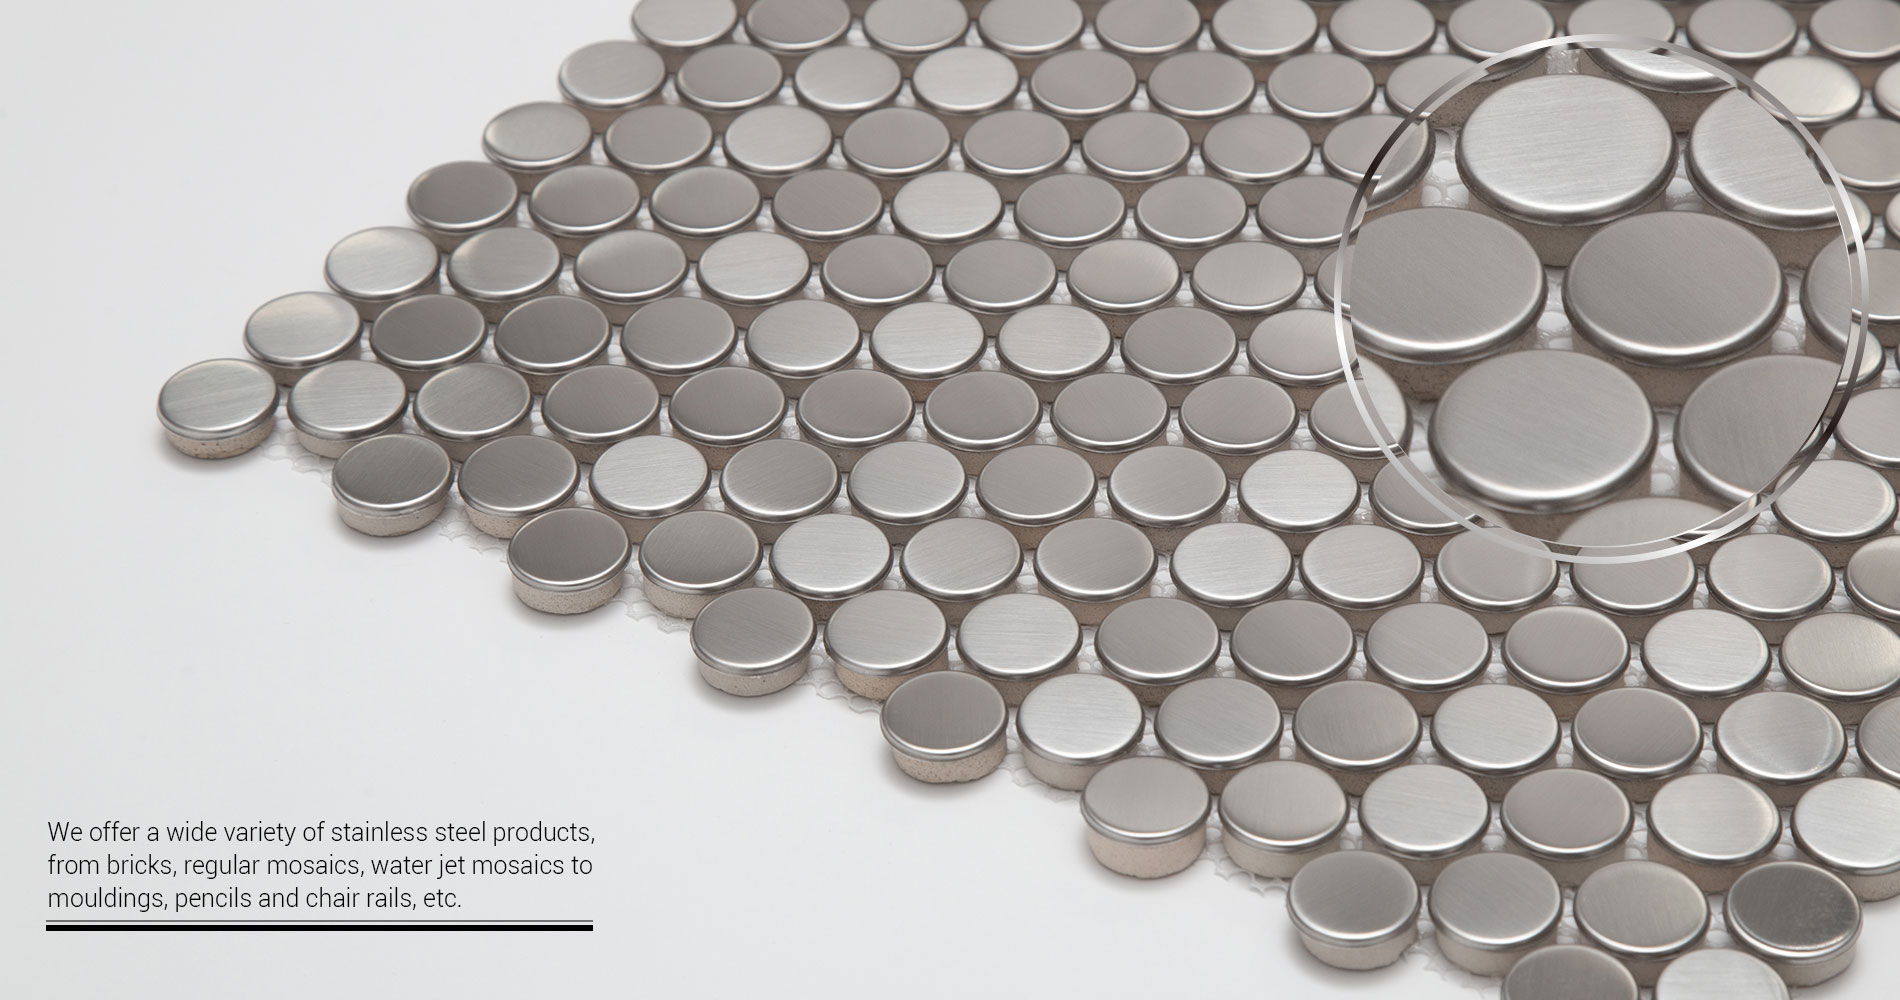 Century-Mosaic-Stainless-Steel-Penny-Round-Mosaic-Tile-Collection